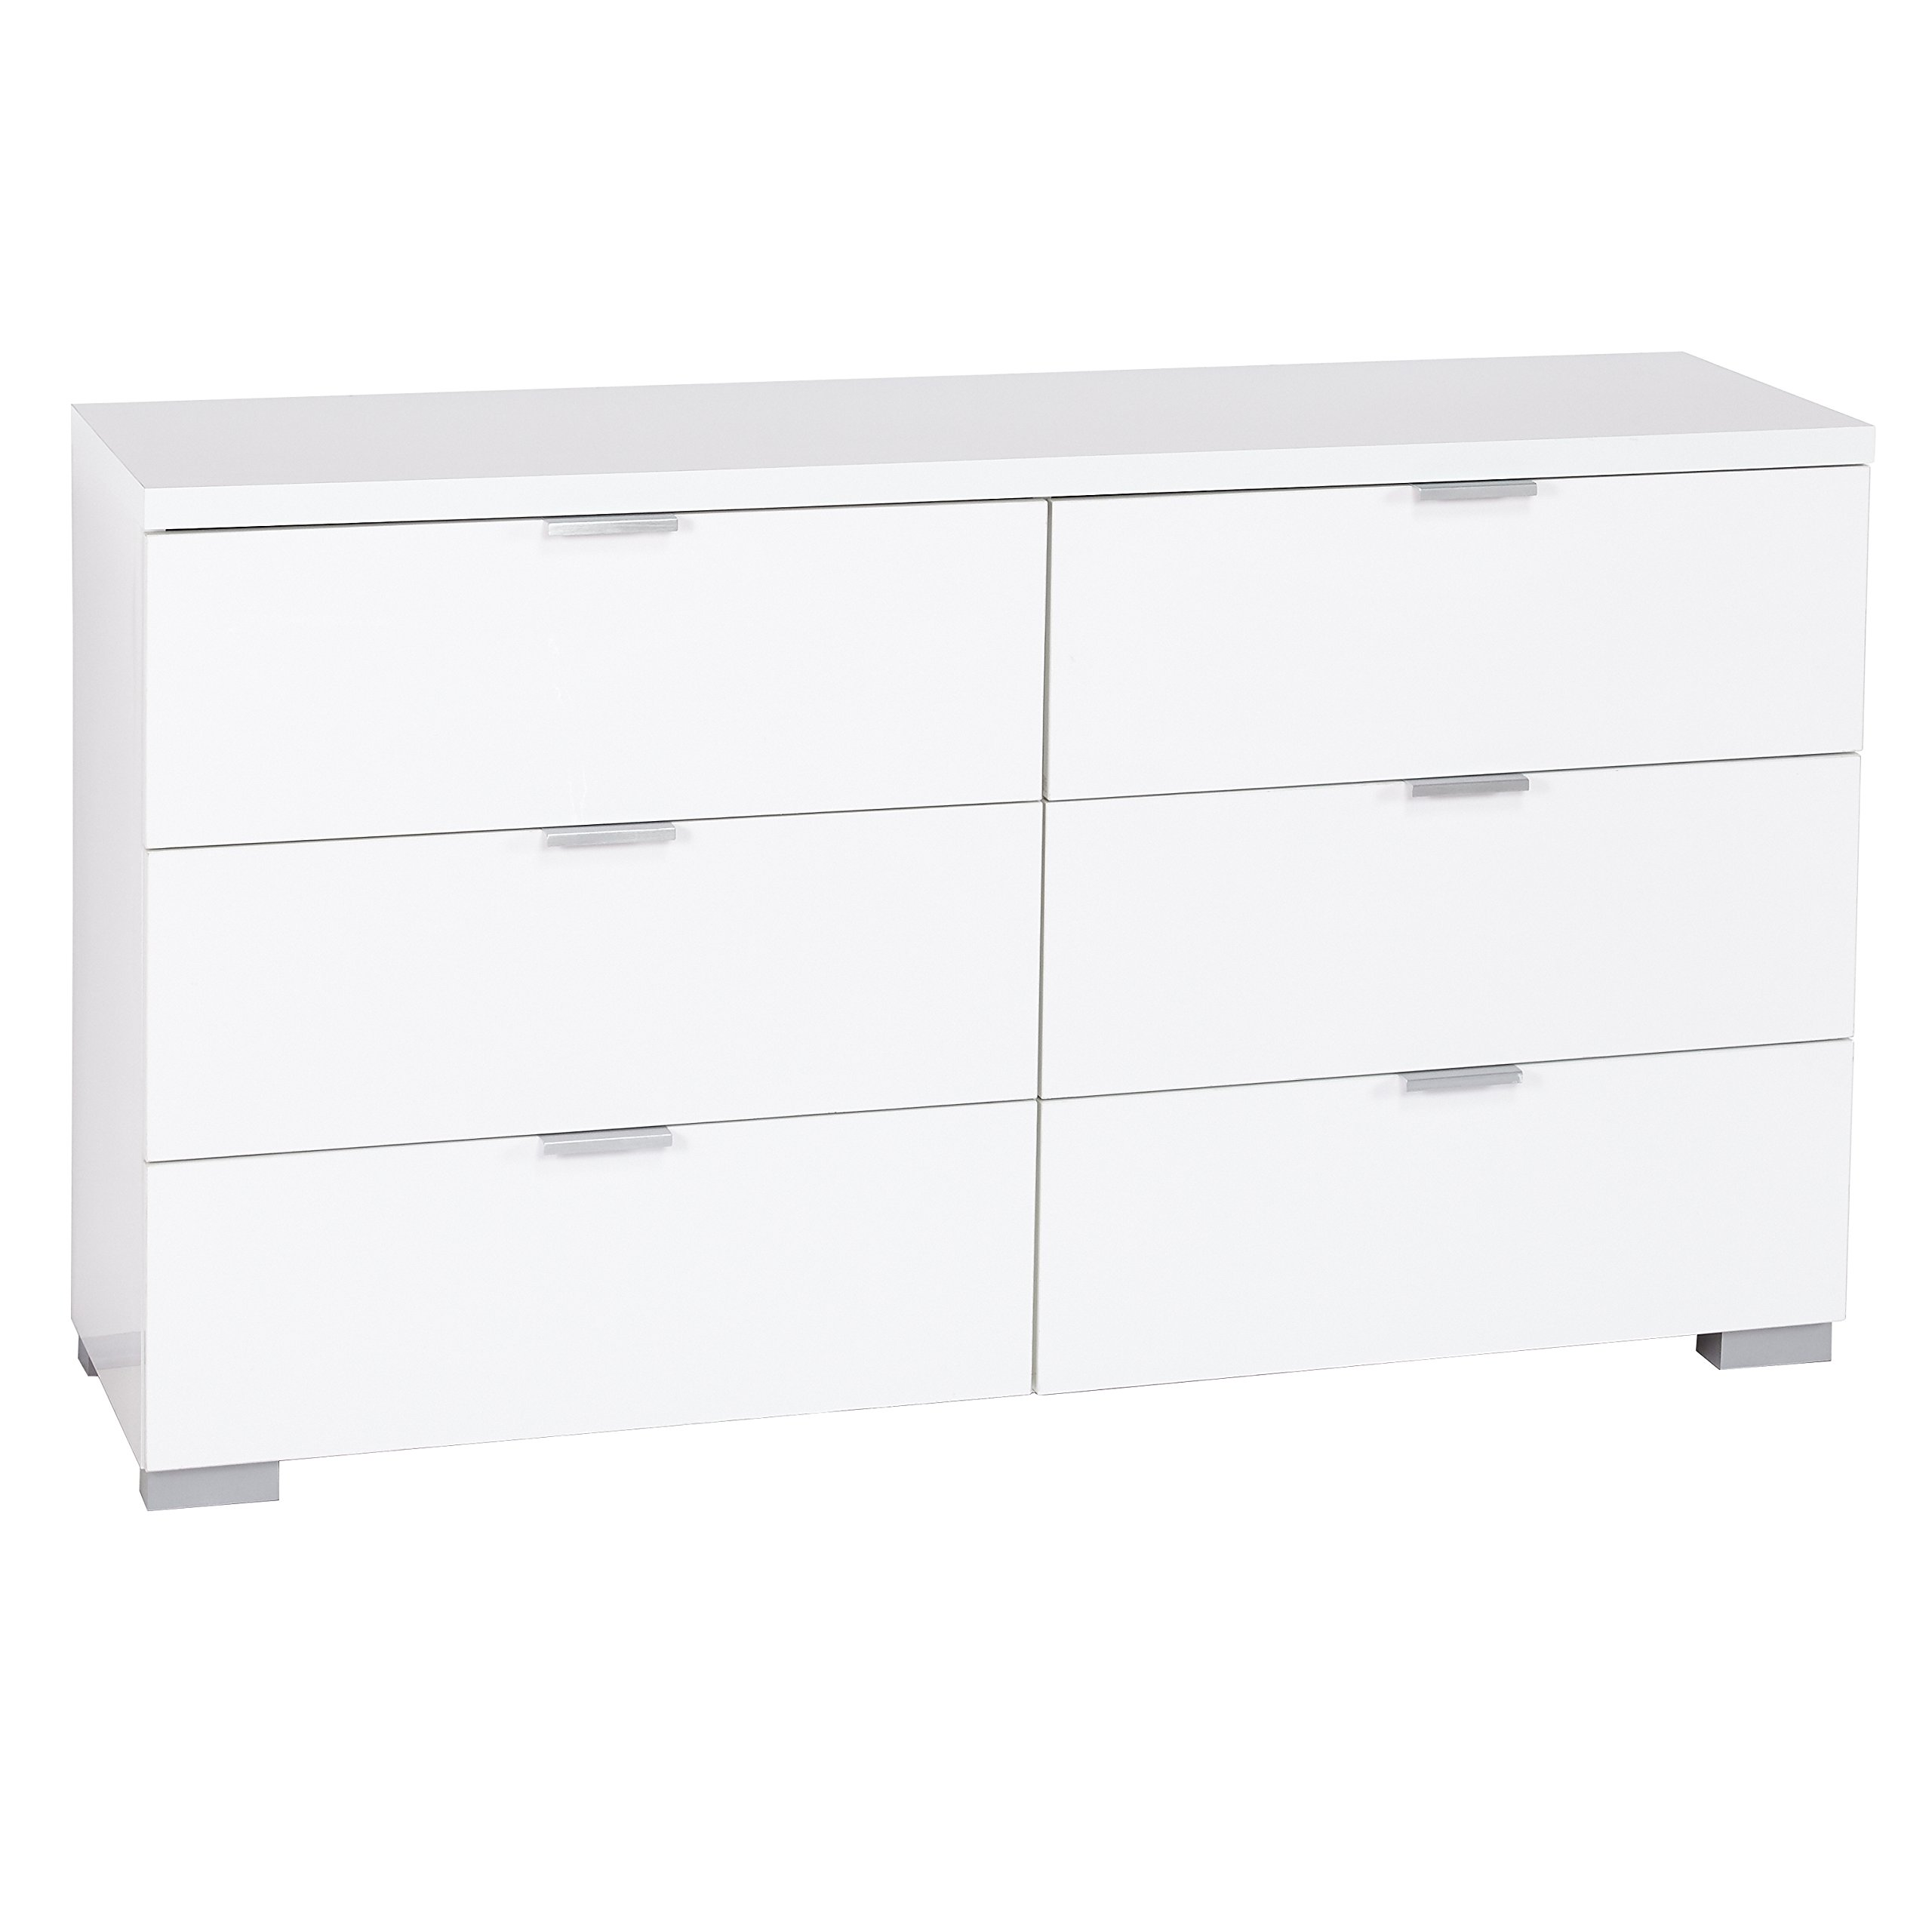 Target Marketing Systems Zuri Series Fusion Collection Contemporary 6 Drawer Chest, White